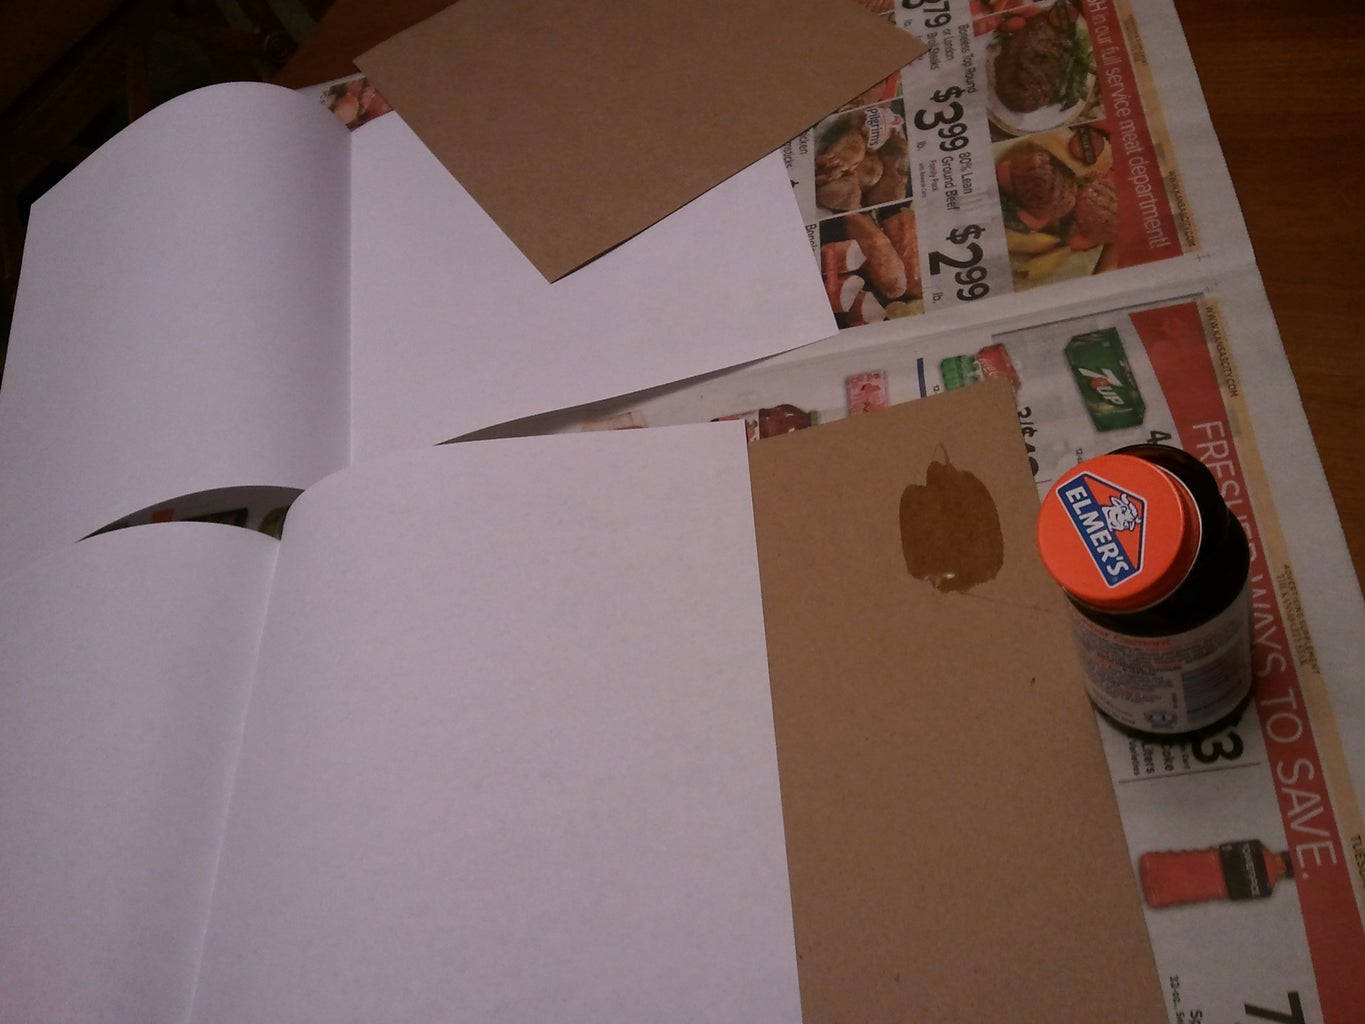 Glue the Covers to the Leaf Pages